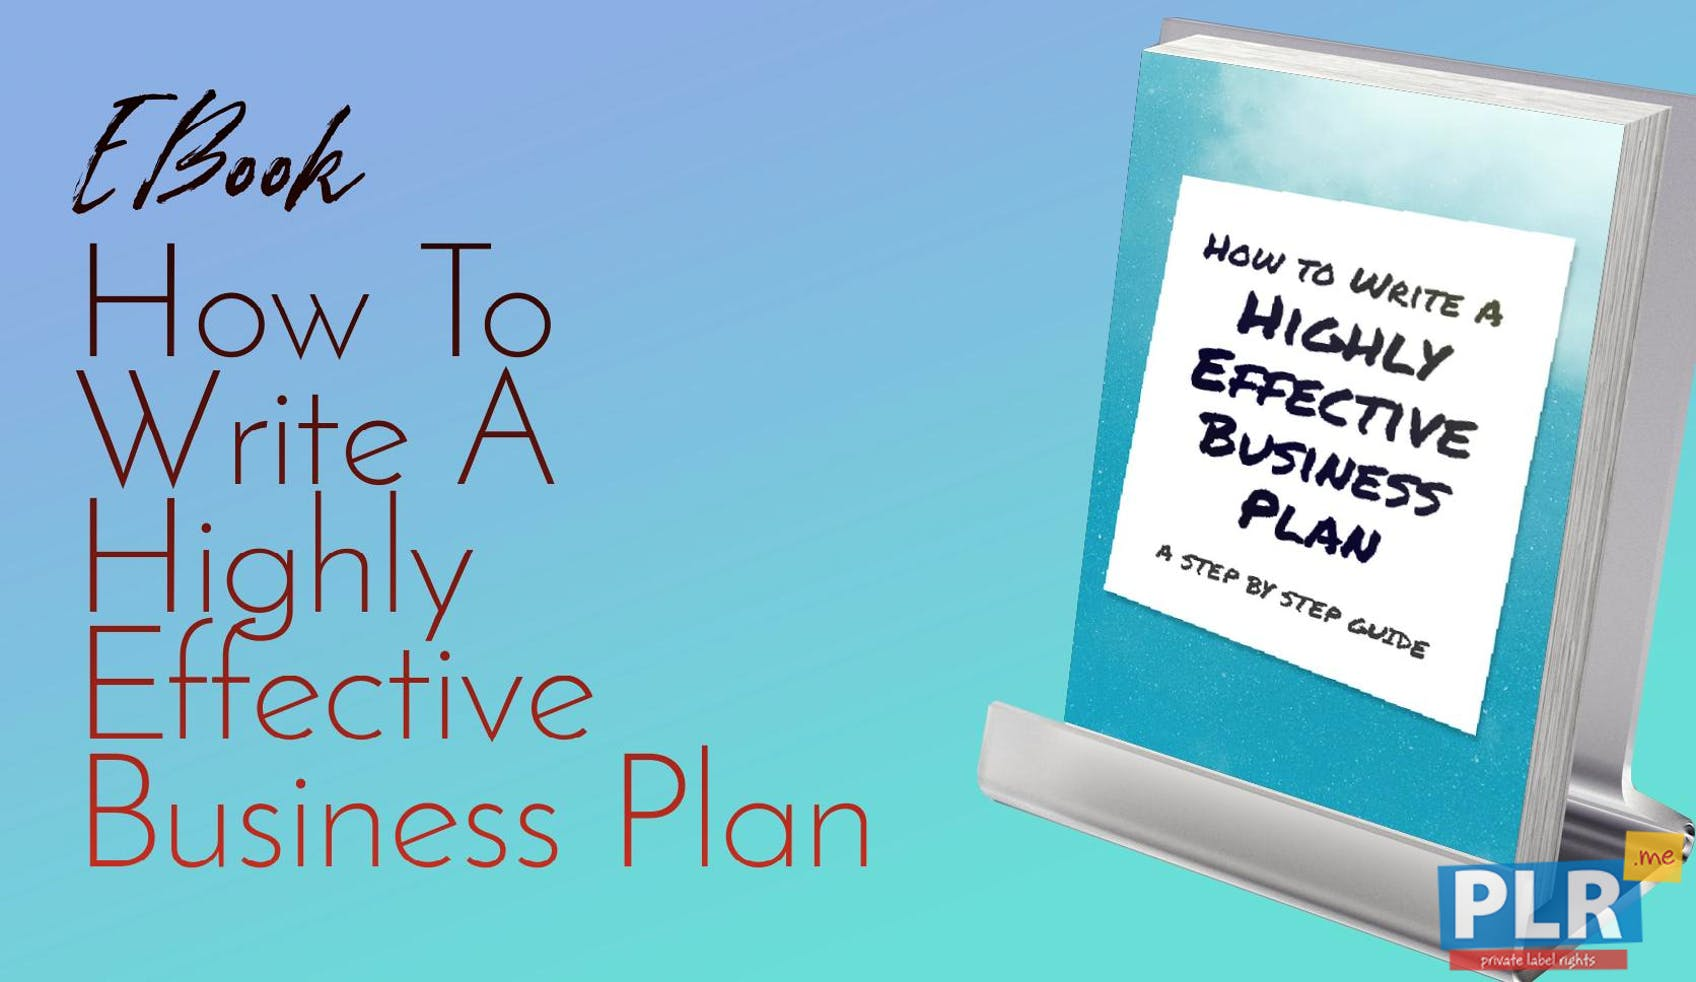 How To Write A Highly Effective Business Plan